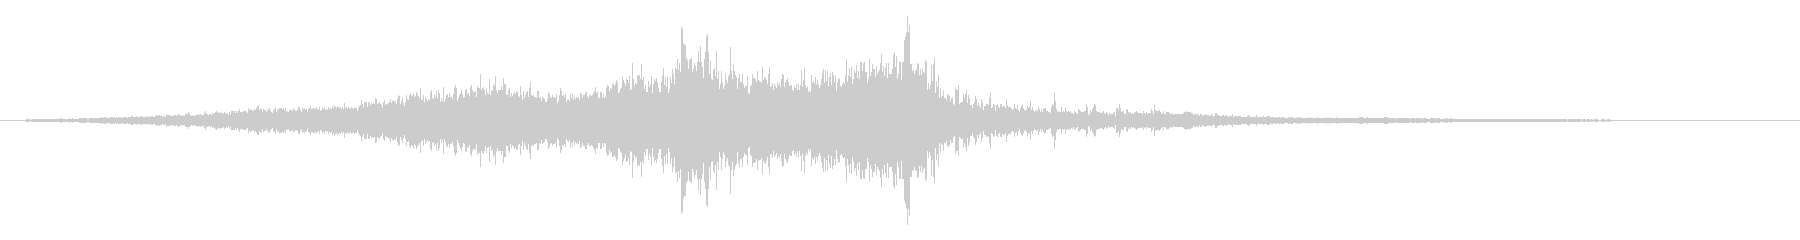 Noise sound source 21 that seems to appear in horror films's unreproduced waveform